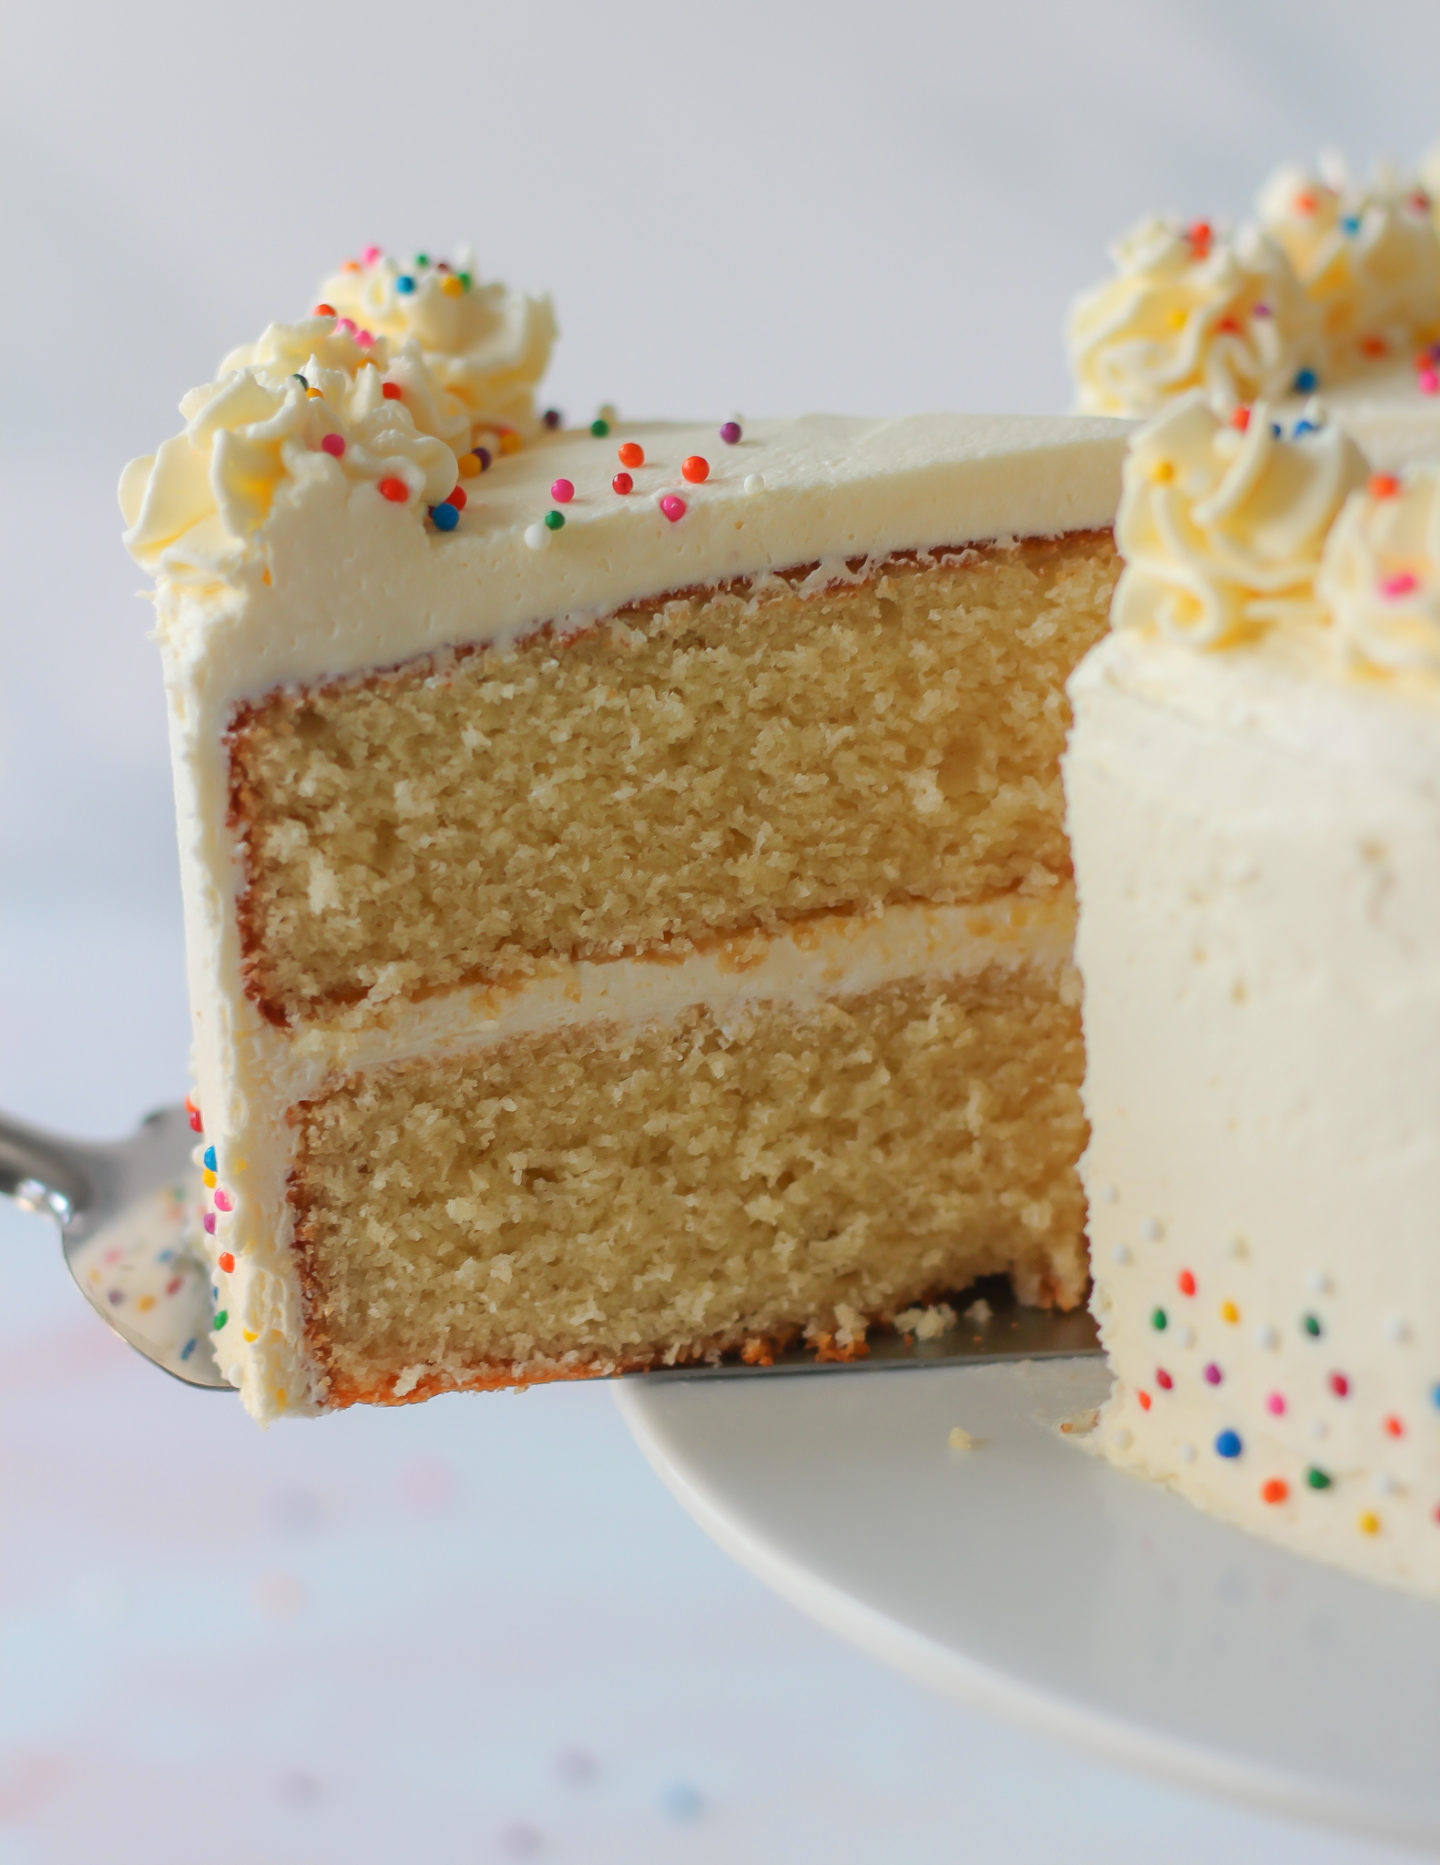 slice of cake being removed from vanilla layer cake with vanilla buttercream